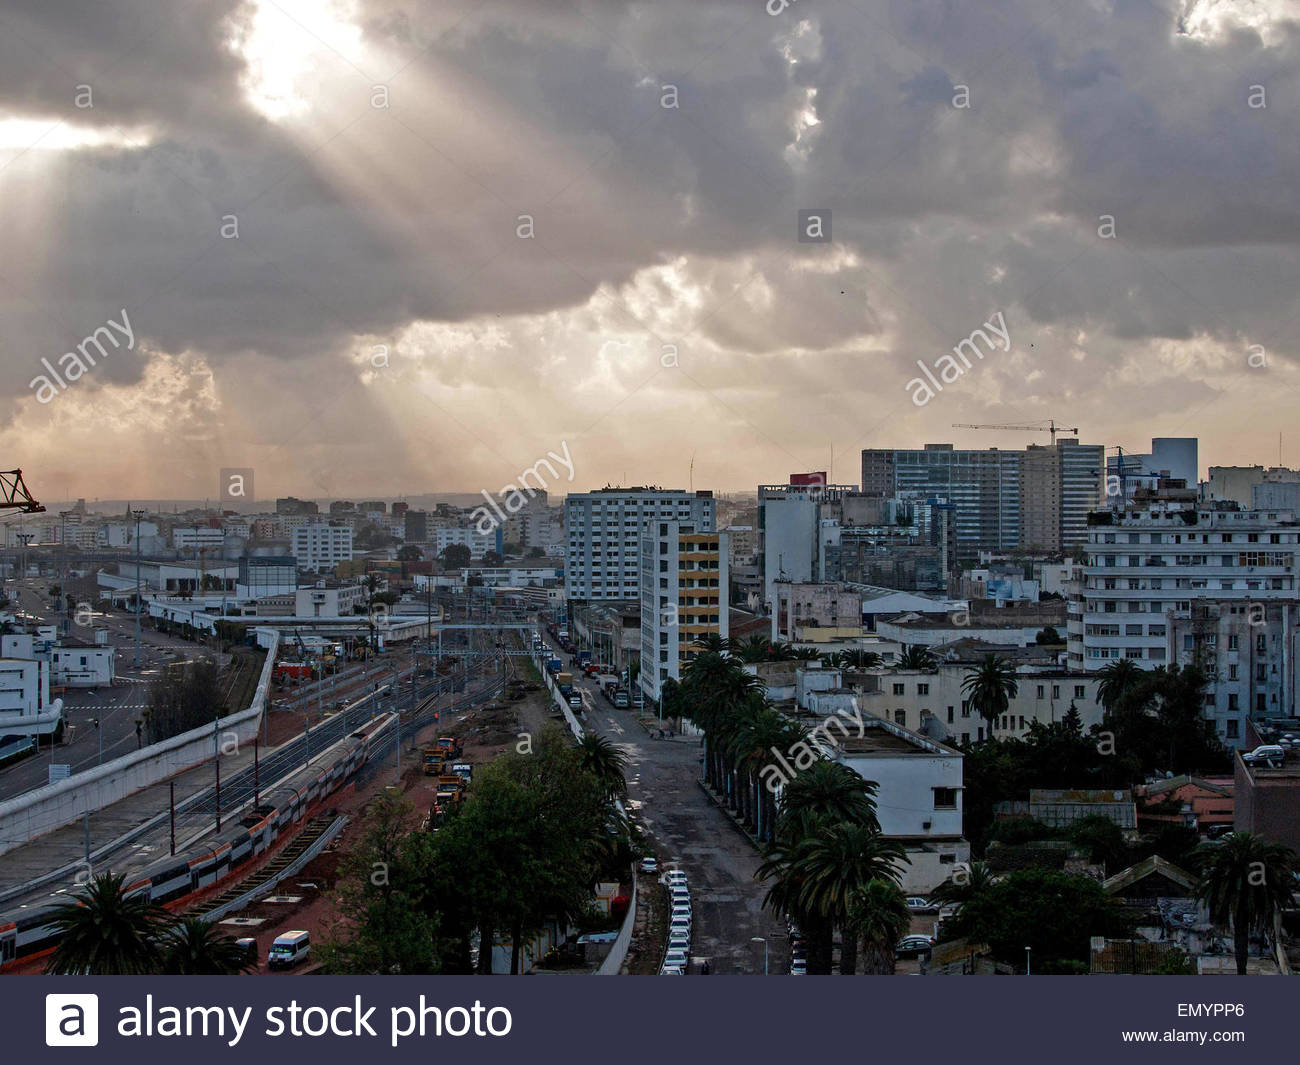 General view on Casablanca, Morocco - Stock Image